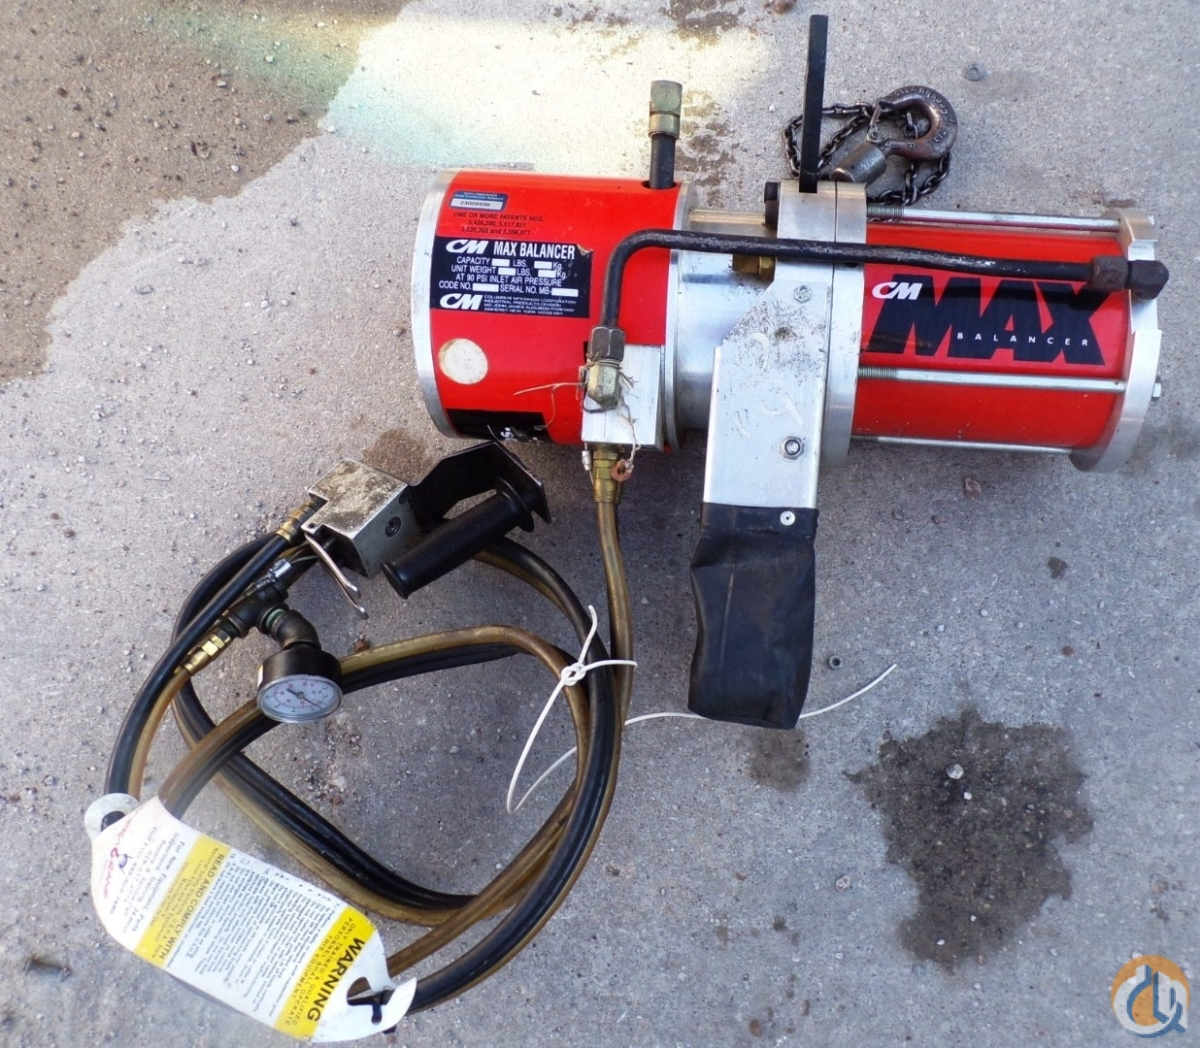 Columbus Mckinnon CM 0950 PNEUMATIC CHAIN HOIST MAX BALANCER 120 LBS CAPACITY 55 KG HoistsWinches Crane Part for Sale in Coffeyville Kansas on CraneNetwork.com